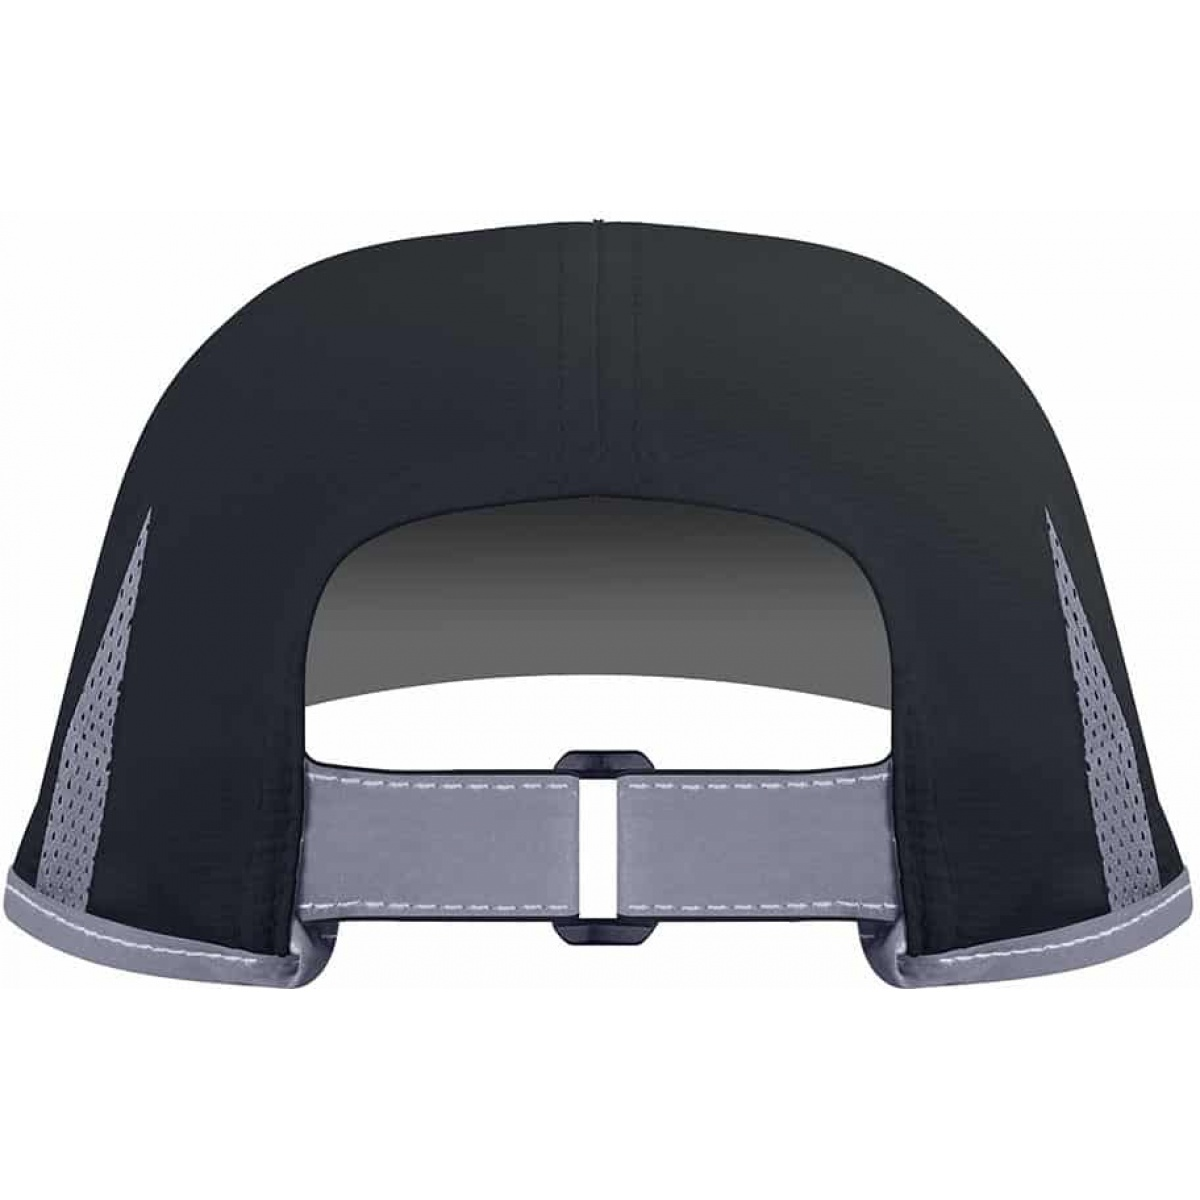 Proviz Classic Running Hat Graphite with reflective details